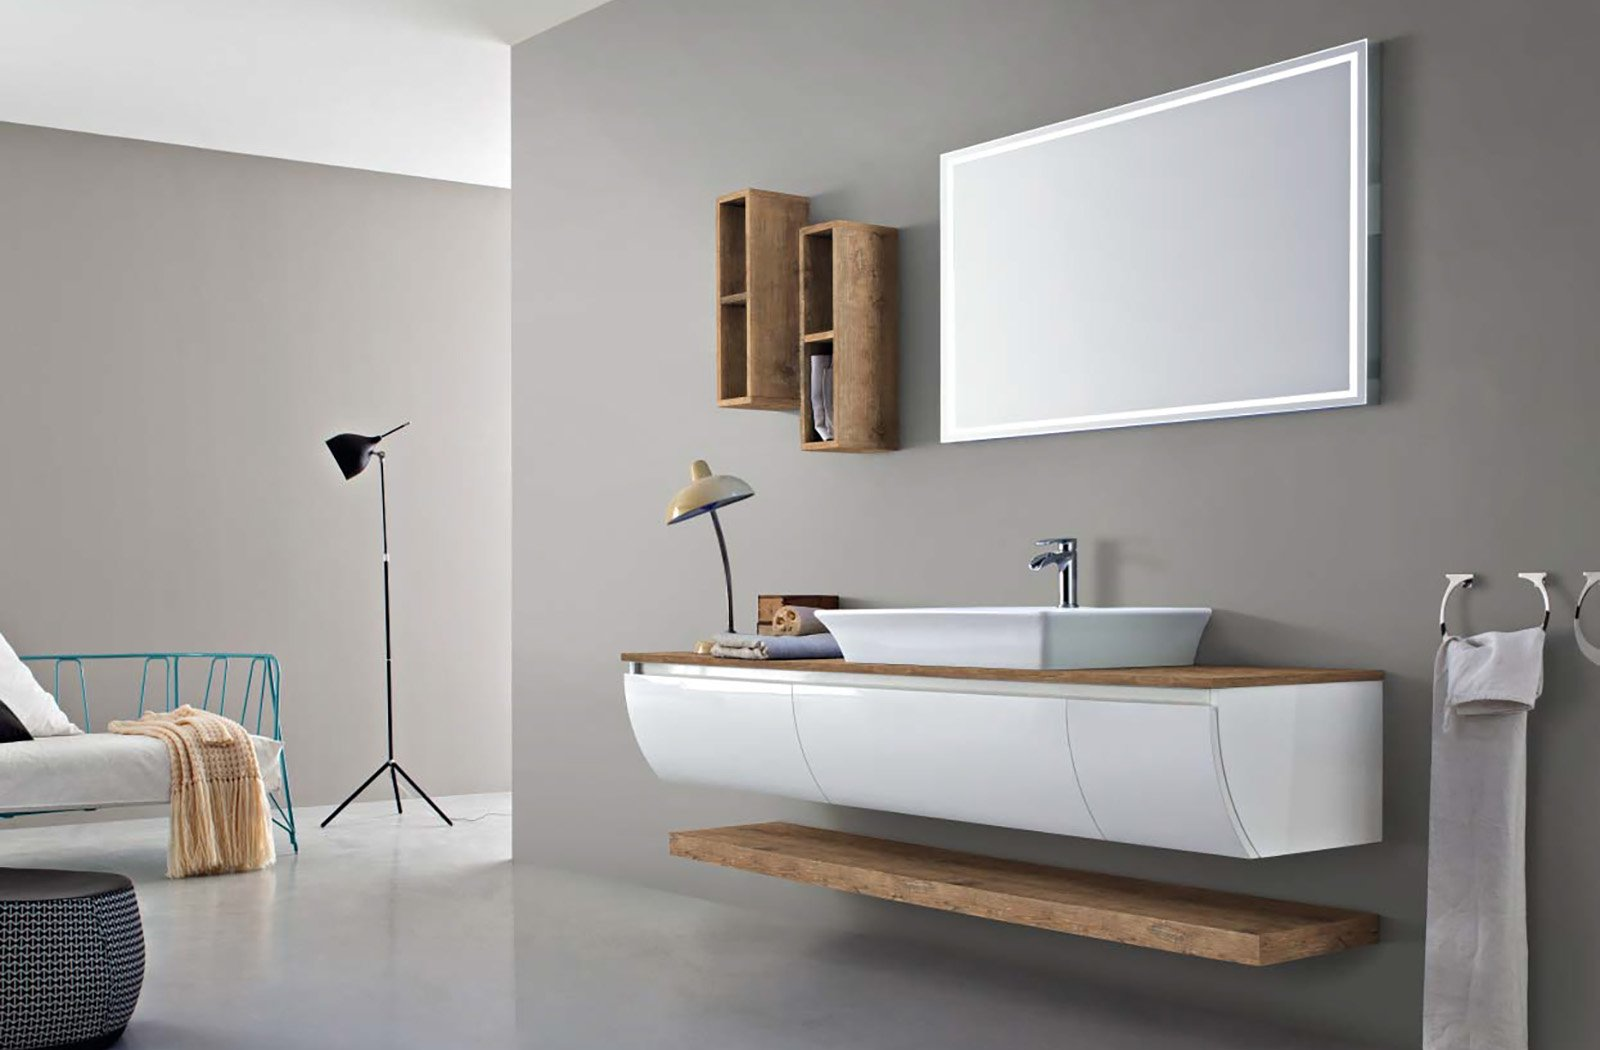 Joy of life by cerasa per arredare il bagno con for Designer di mobili atlanta